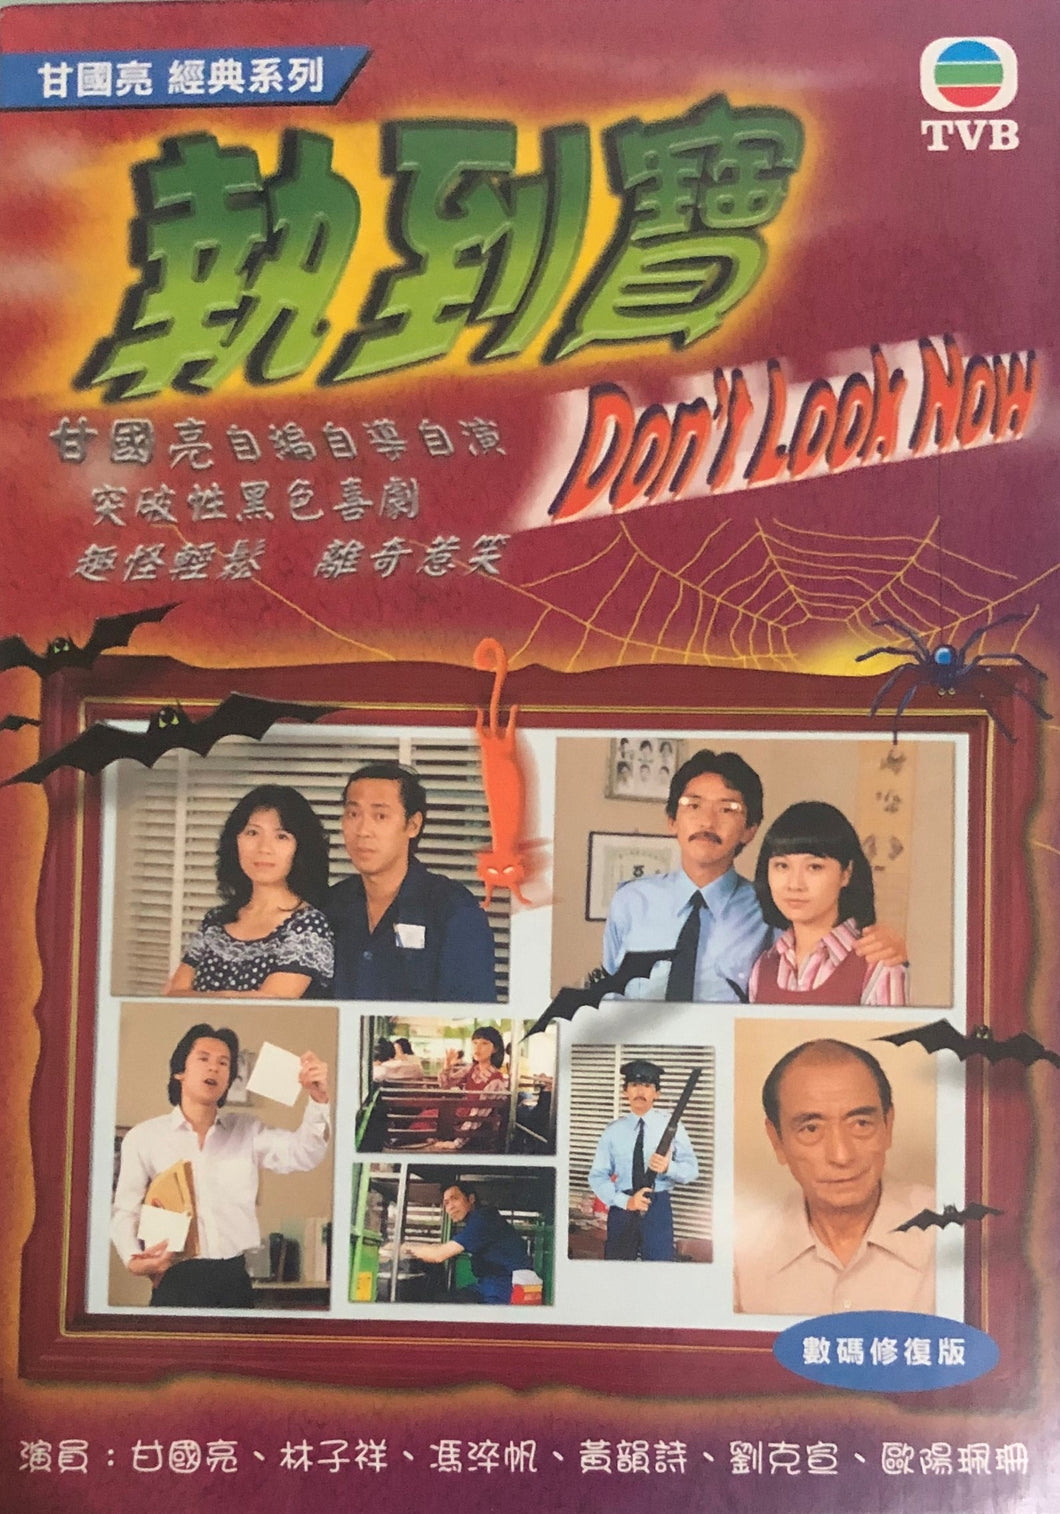 DON'T LOOK NOW 執到寶1980 TVB (3DVD) (NON ENGLISH SUB) REGION FREE